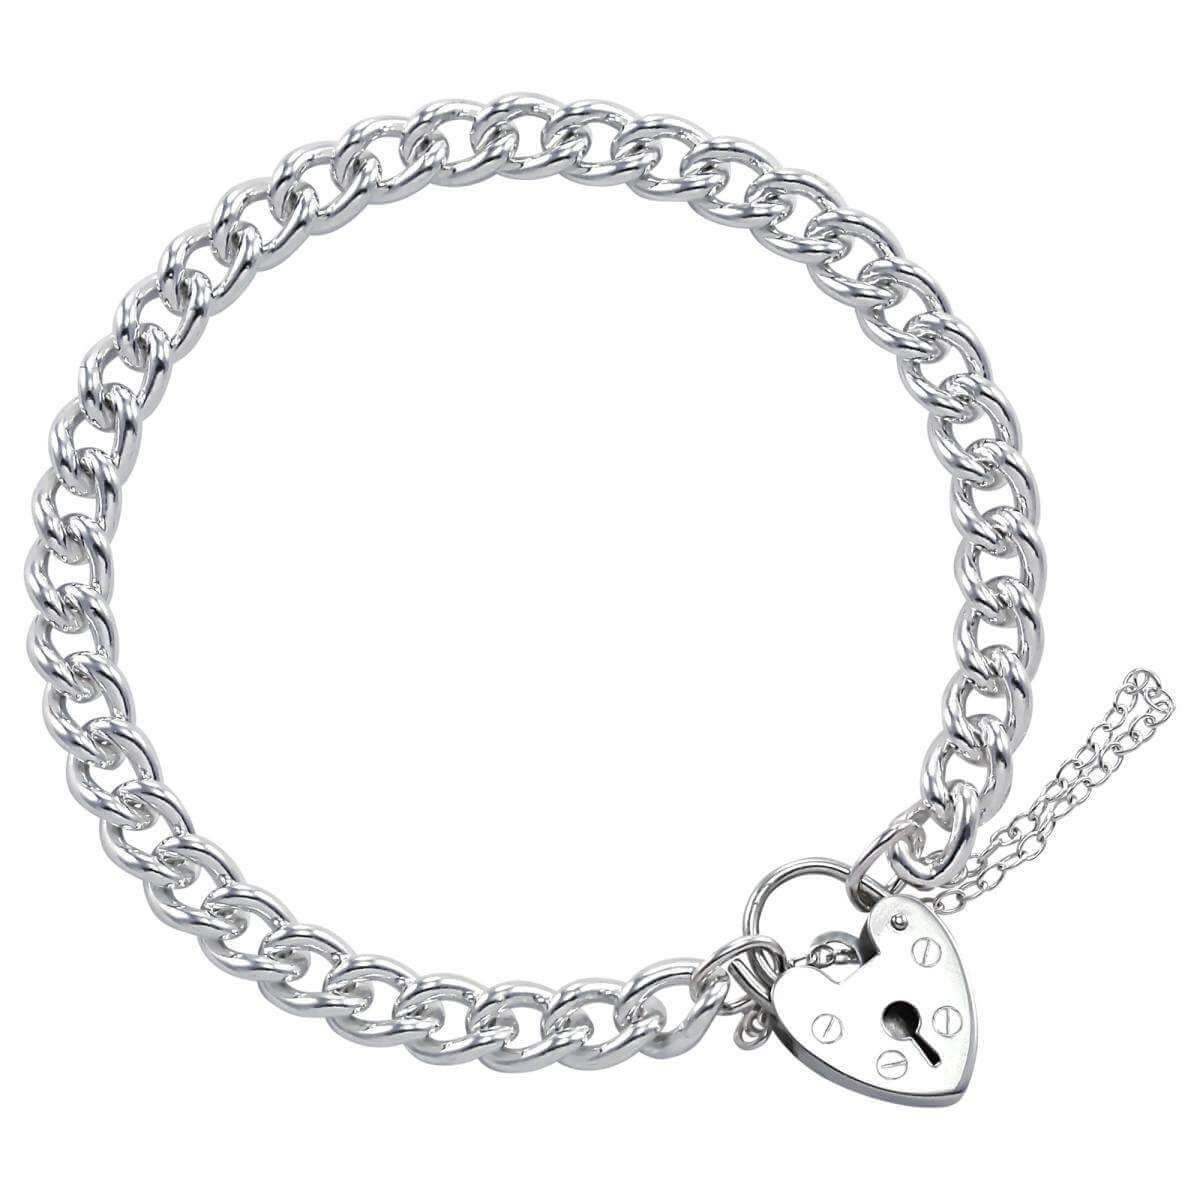 Sterling Silver Single Curb Charm Bracelet With Heart Clasp